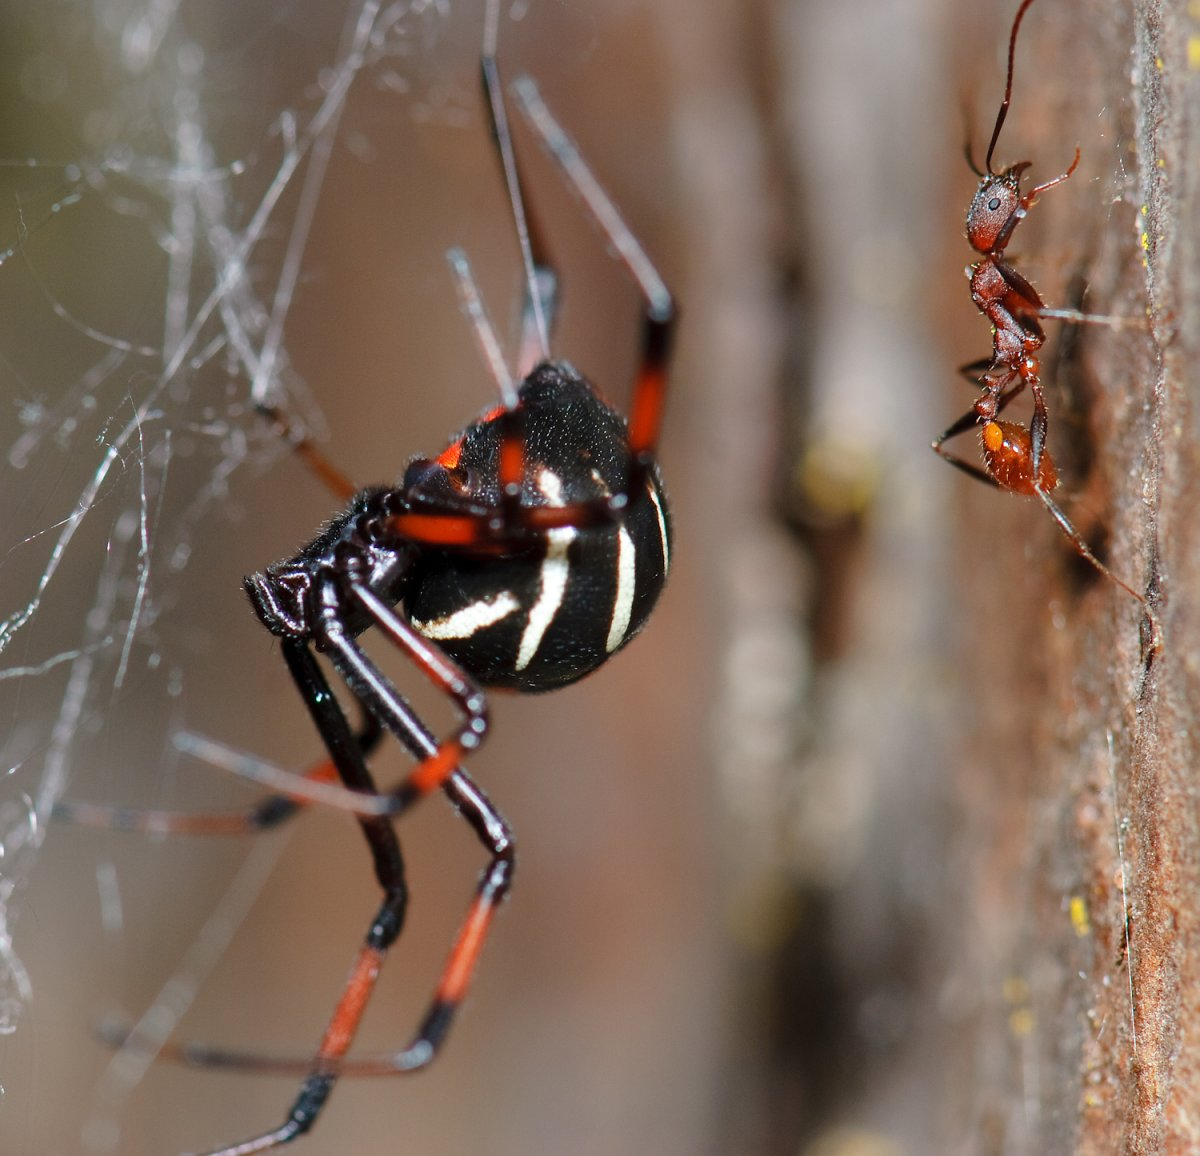 The northern black widow spider has been spotted in Montreal, indicating an increase in its northern range.  (Photo credit: Marshal Hedin).